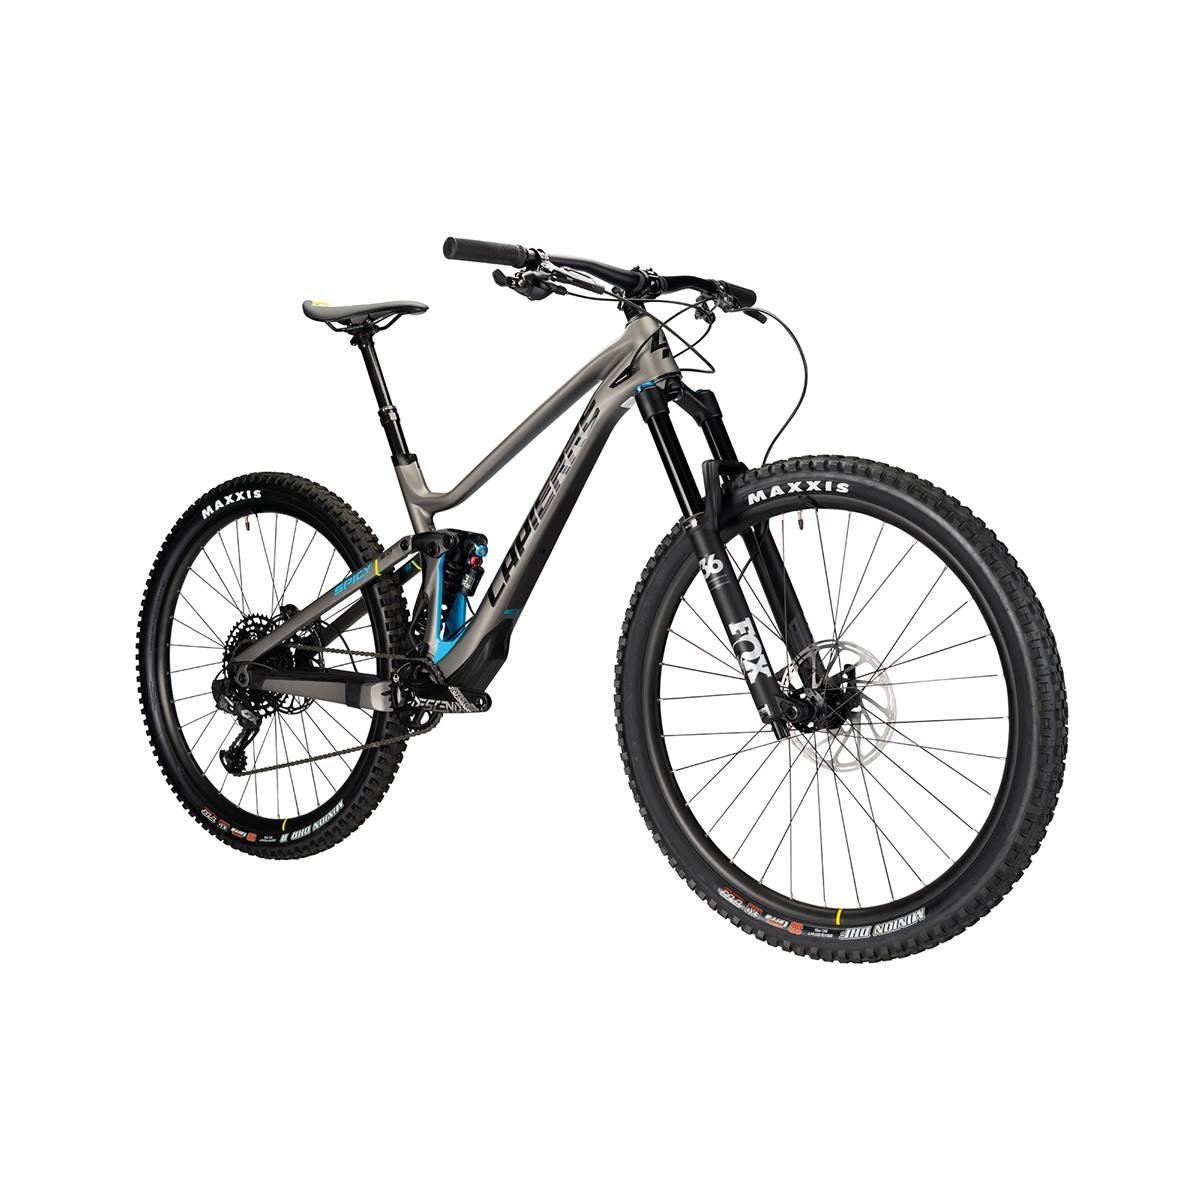 vtt tout suspendu lapierre spicy fit 5 0 27 5 2020 pas cher intercycle